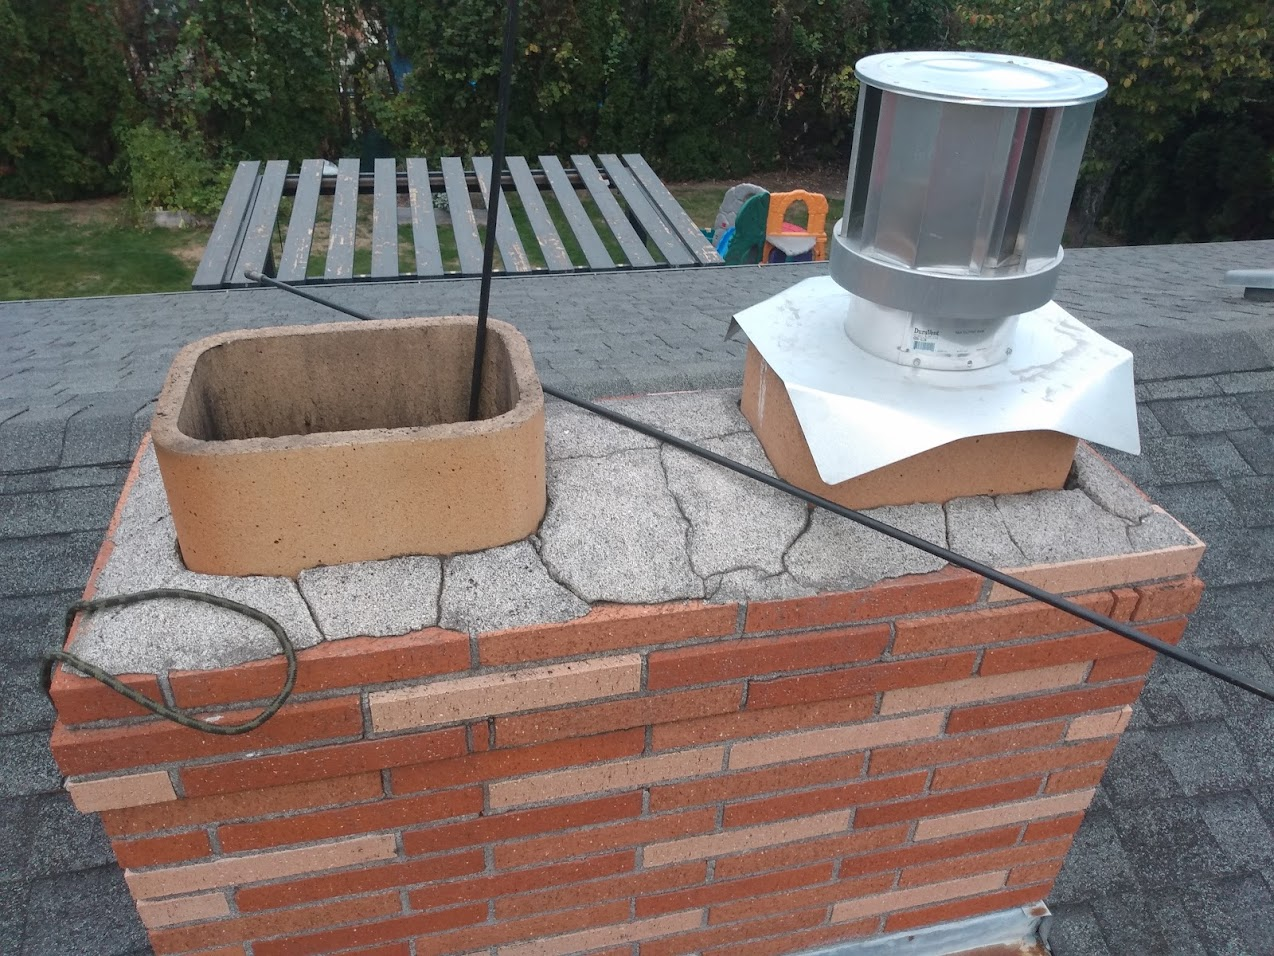 Severely cracked and deteriorated chimney crown. Needs to be replaced with a new crown.